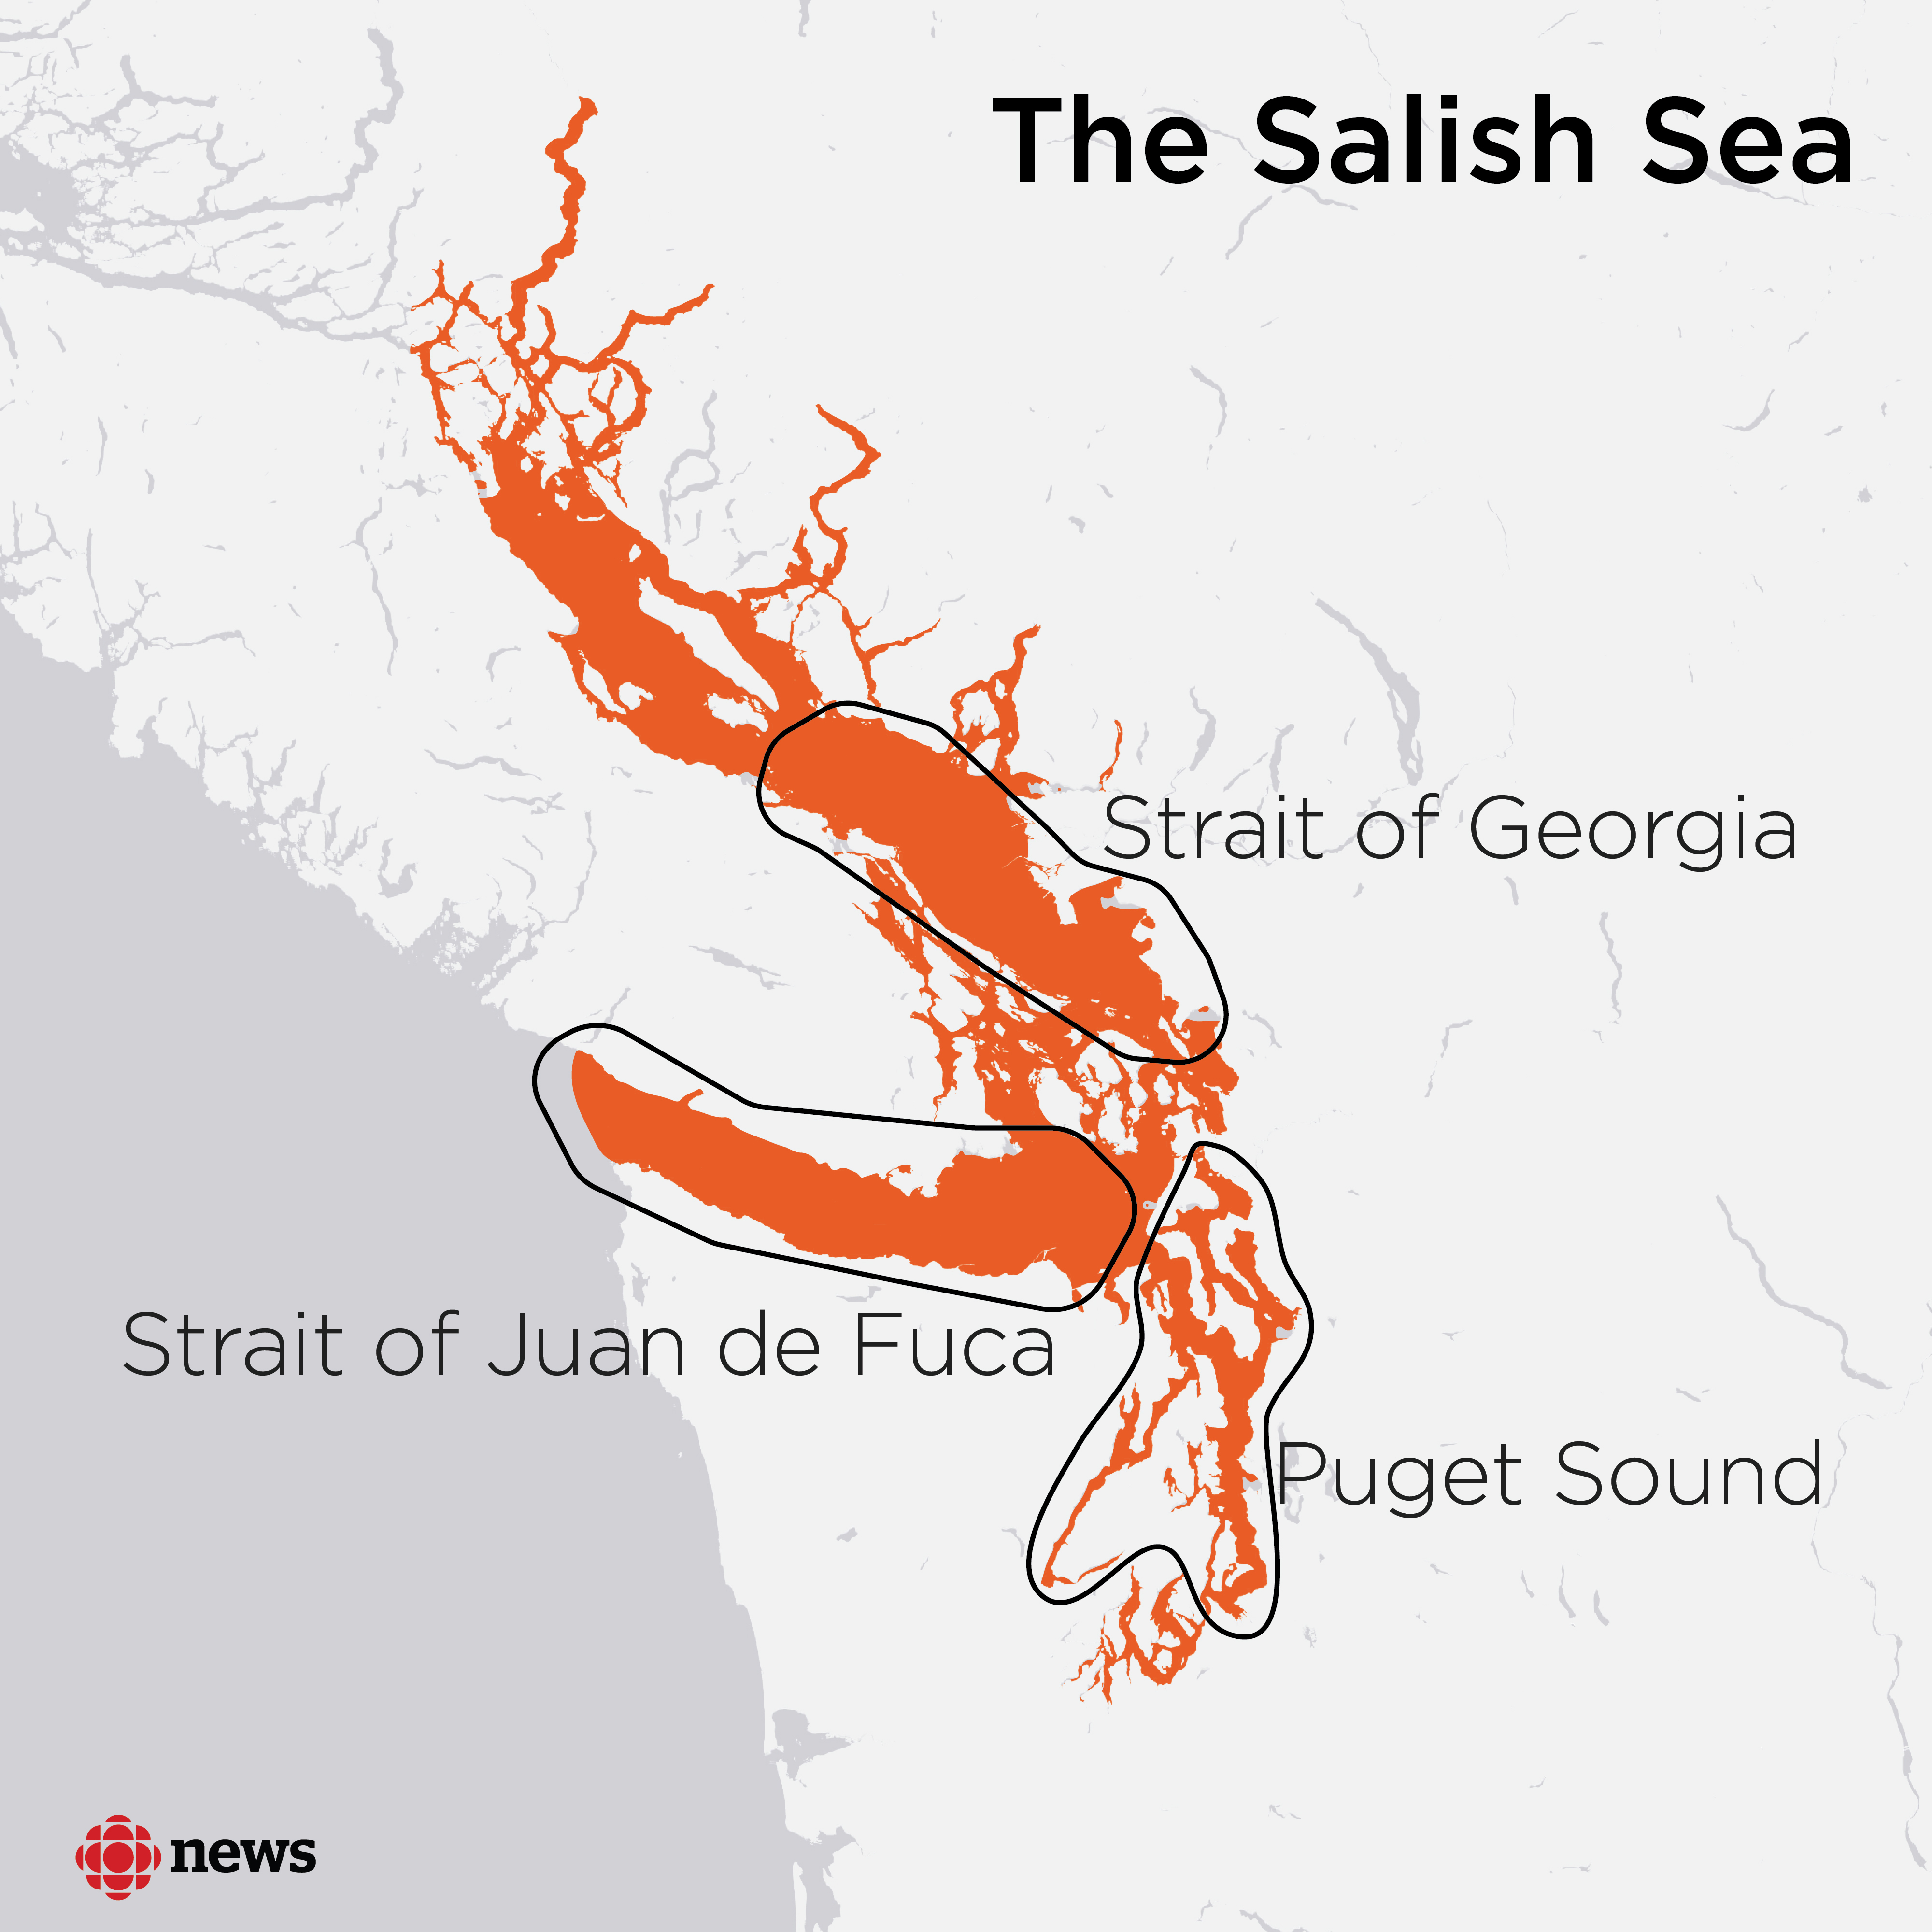 The southern residents are frequently seen in the Salish Sea, a network of waterways touching southwestern British Columbia and northwestern Washington state. It includes the Strait of Georgia, Strait of Juan de Fuca and Puget Sound. (CBC)